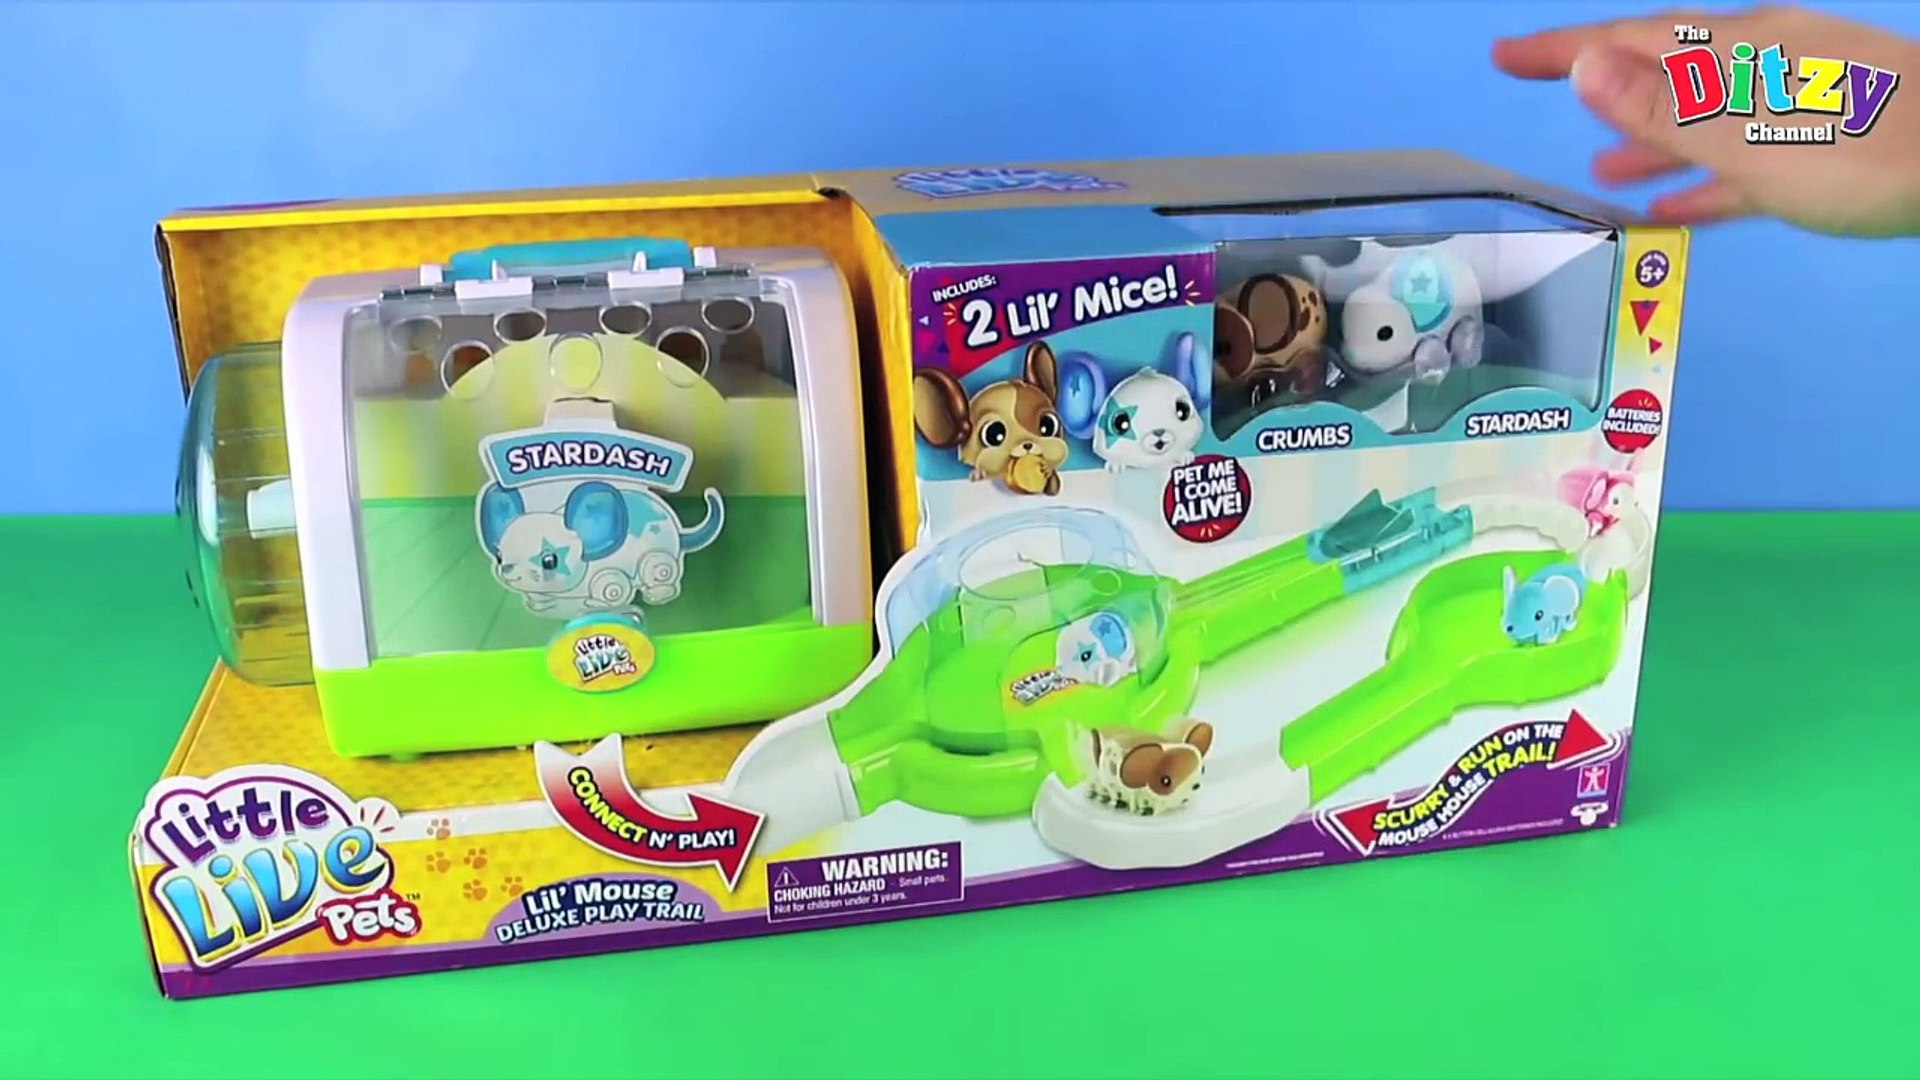 New Little Live Pets Lil Mouse Play Trail Toy Unboxing And Adorable Fun Play 2 Pet Mice 動画 Dailymotion